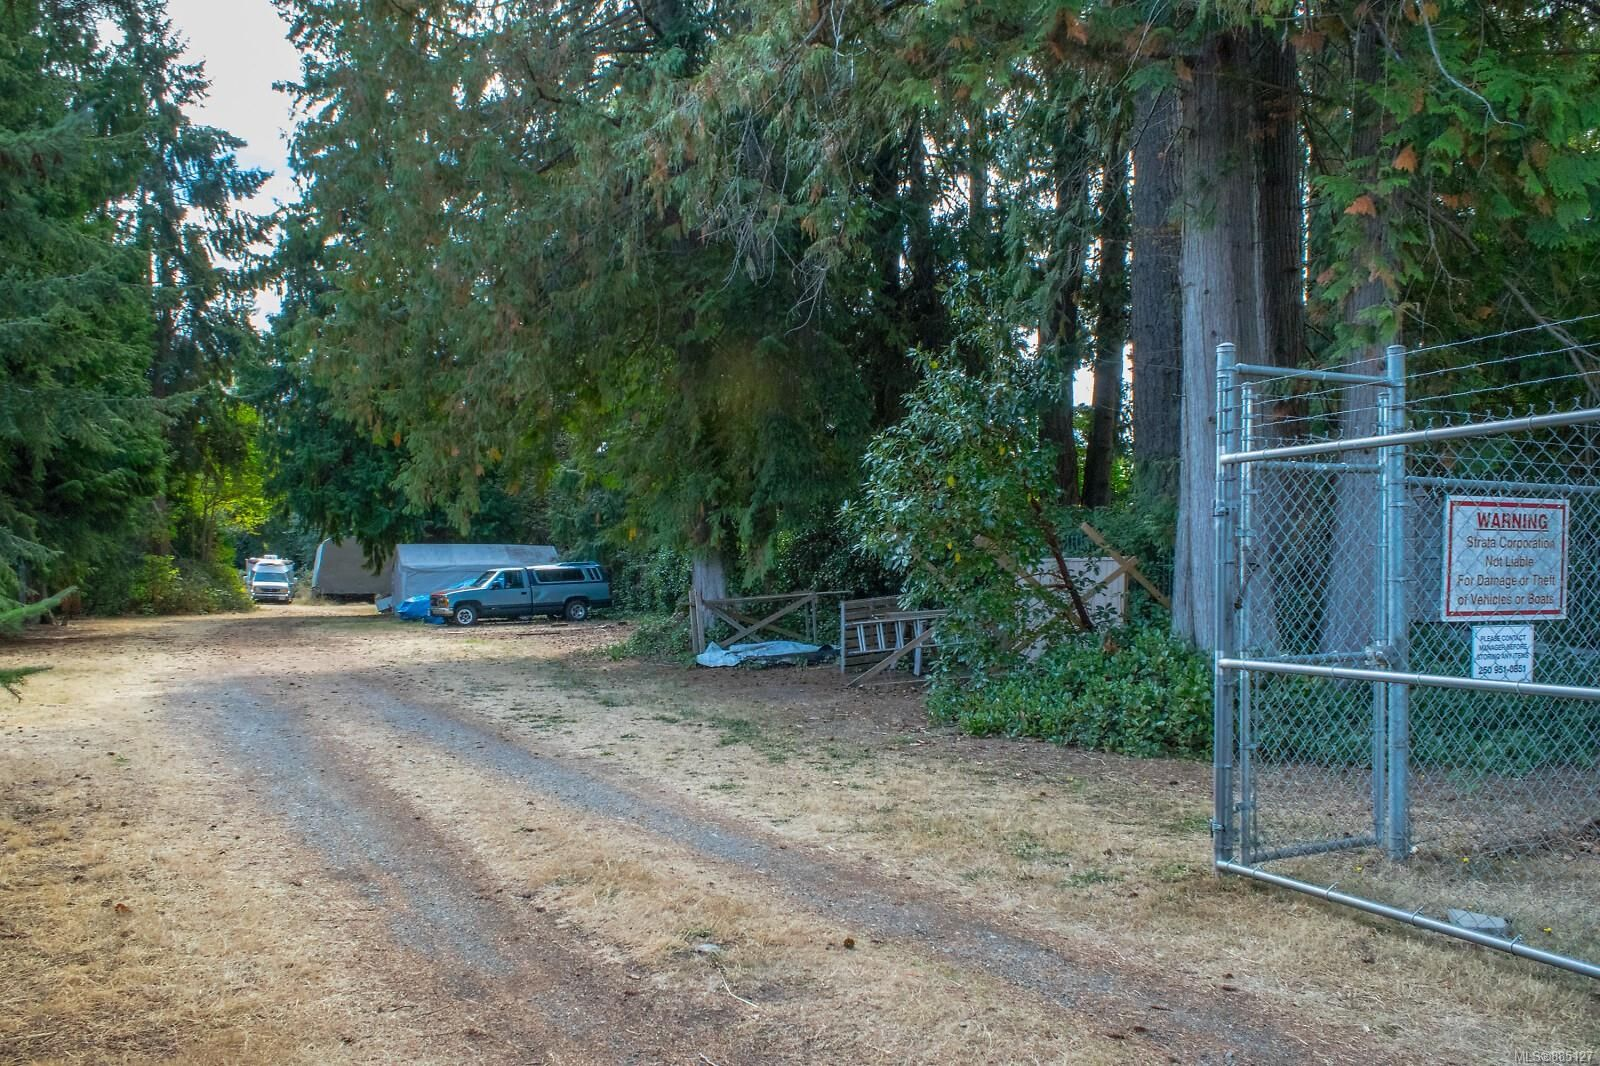 Photo 63: Photos: 26 529 Johnstone Rd in : PQ French Creek Row/Townhouse for sale (Parksville/Qualicum)  : MLS®# 885127